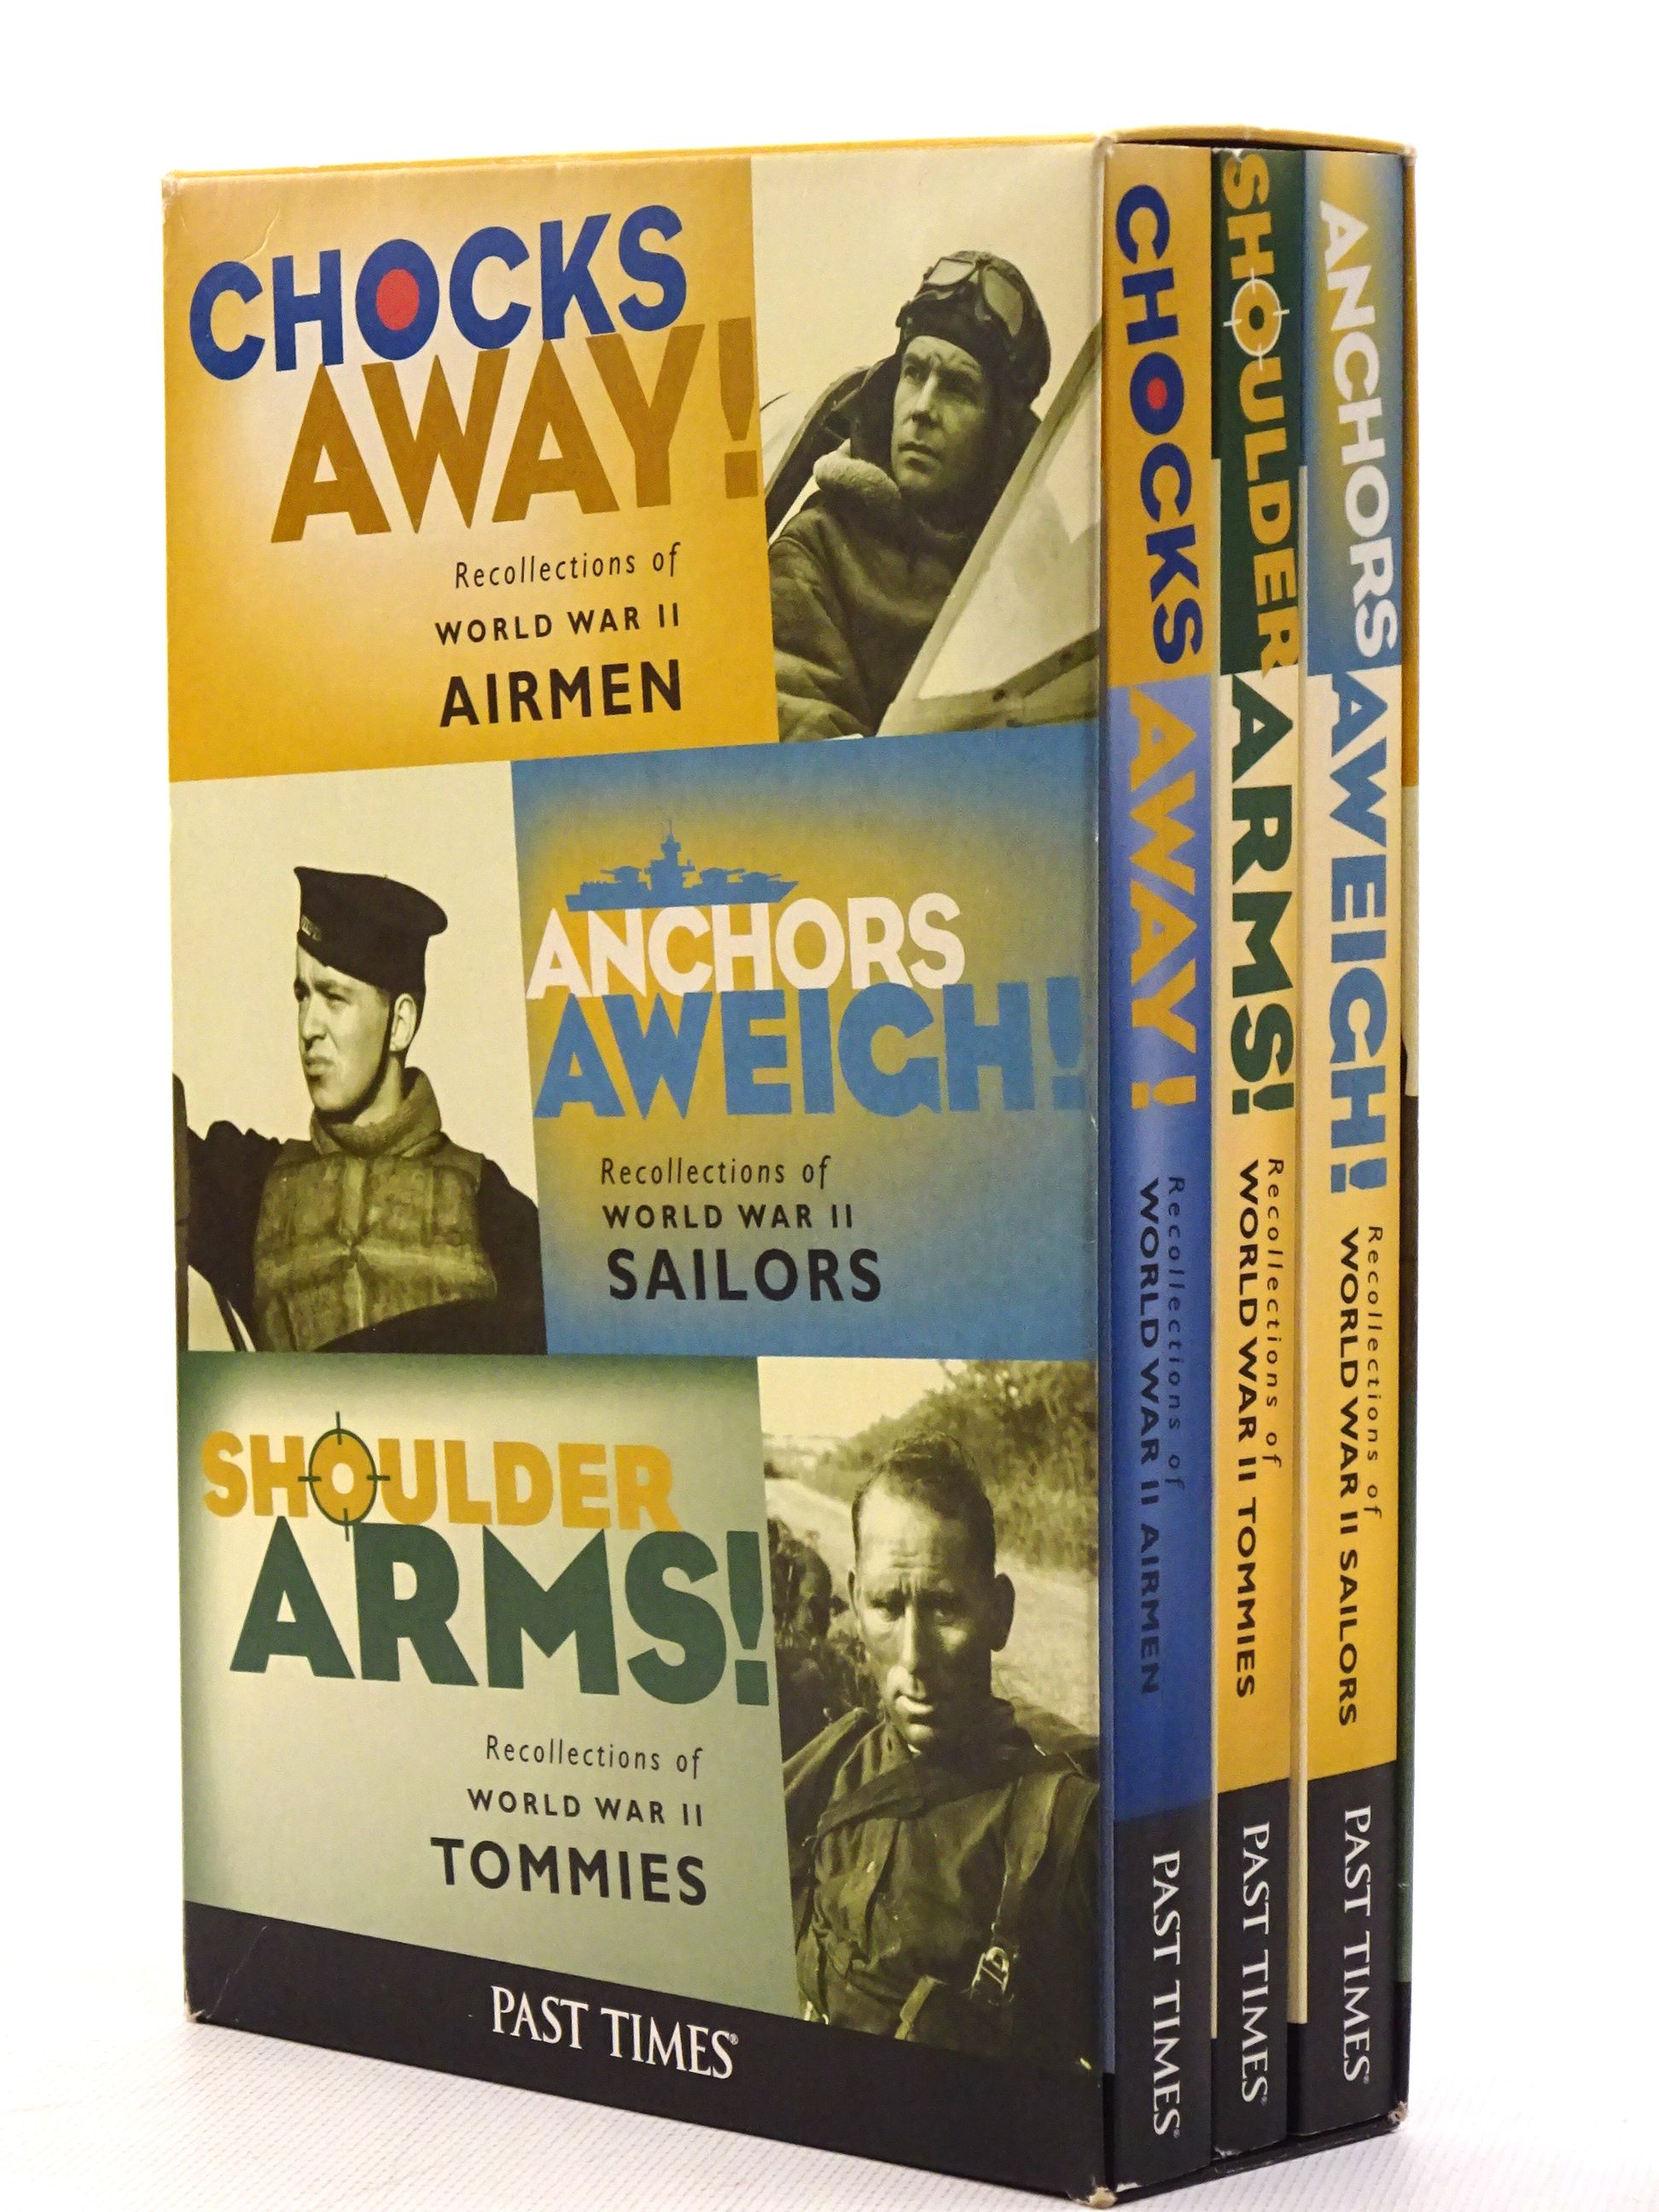 Photo of 3 BOOK SET: ANCHORS AWEIGH!, CHOCKS AWAY!, SHOULDER ARMS! published by Past Times (STOCK CODE: 1610627)  for sale by Stella & Rose's Books